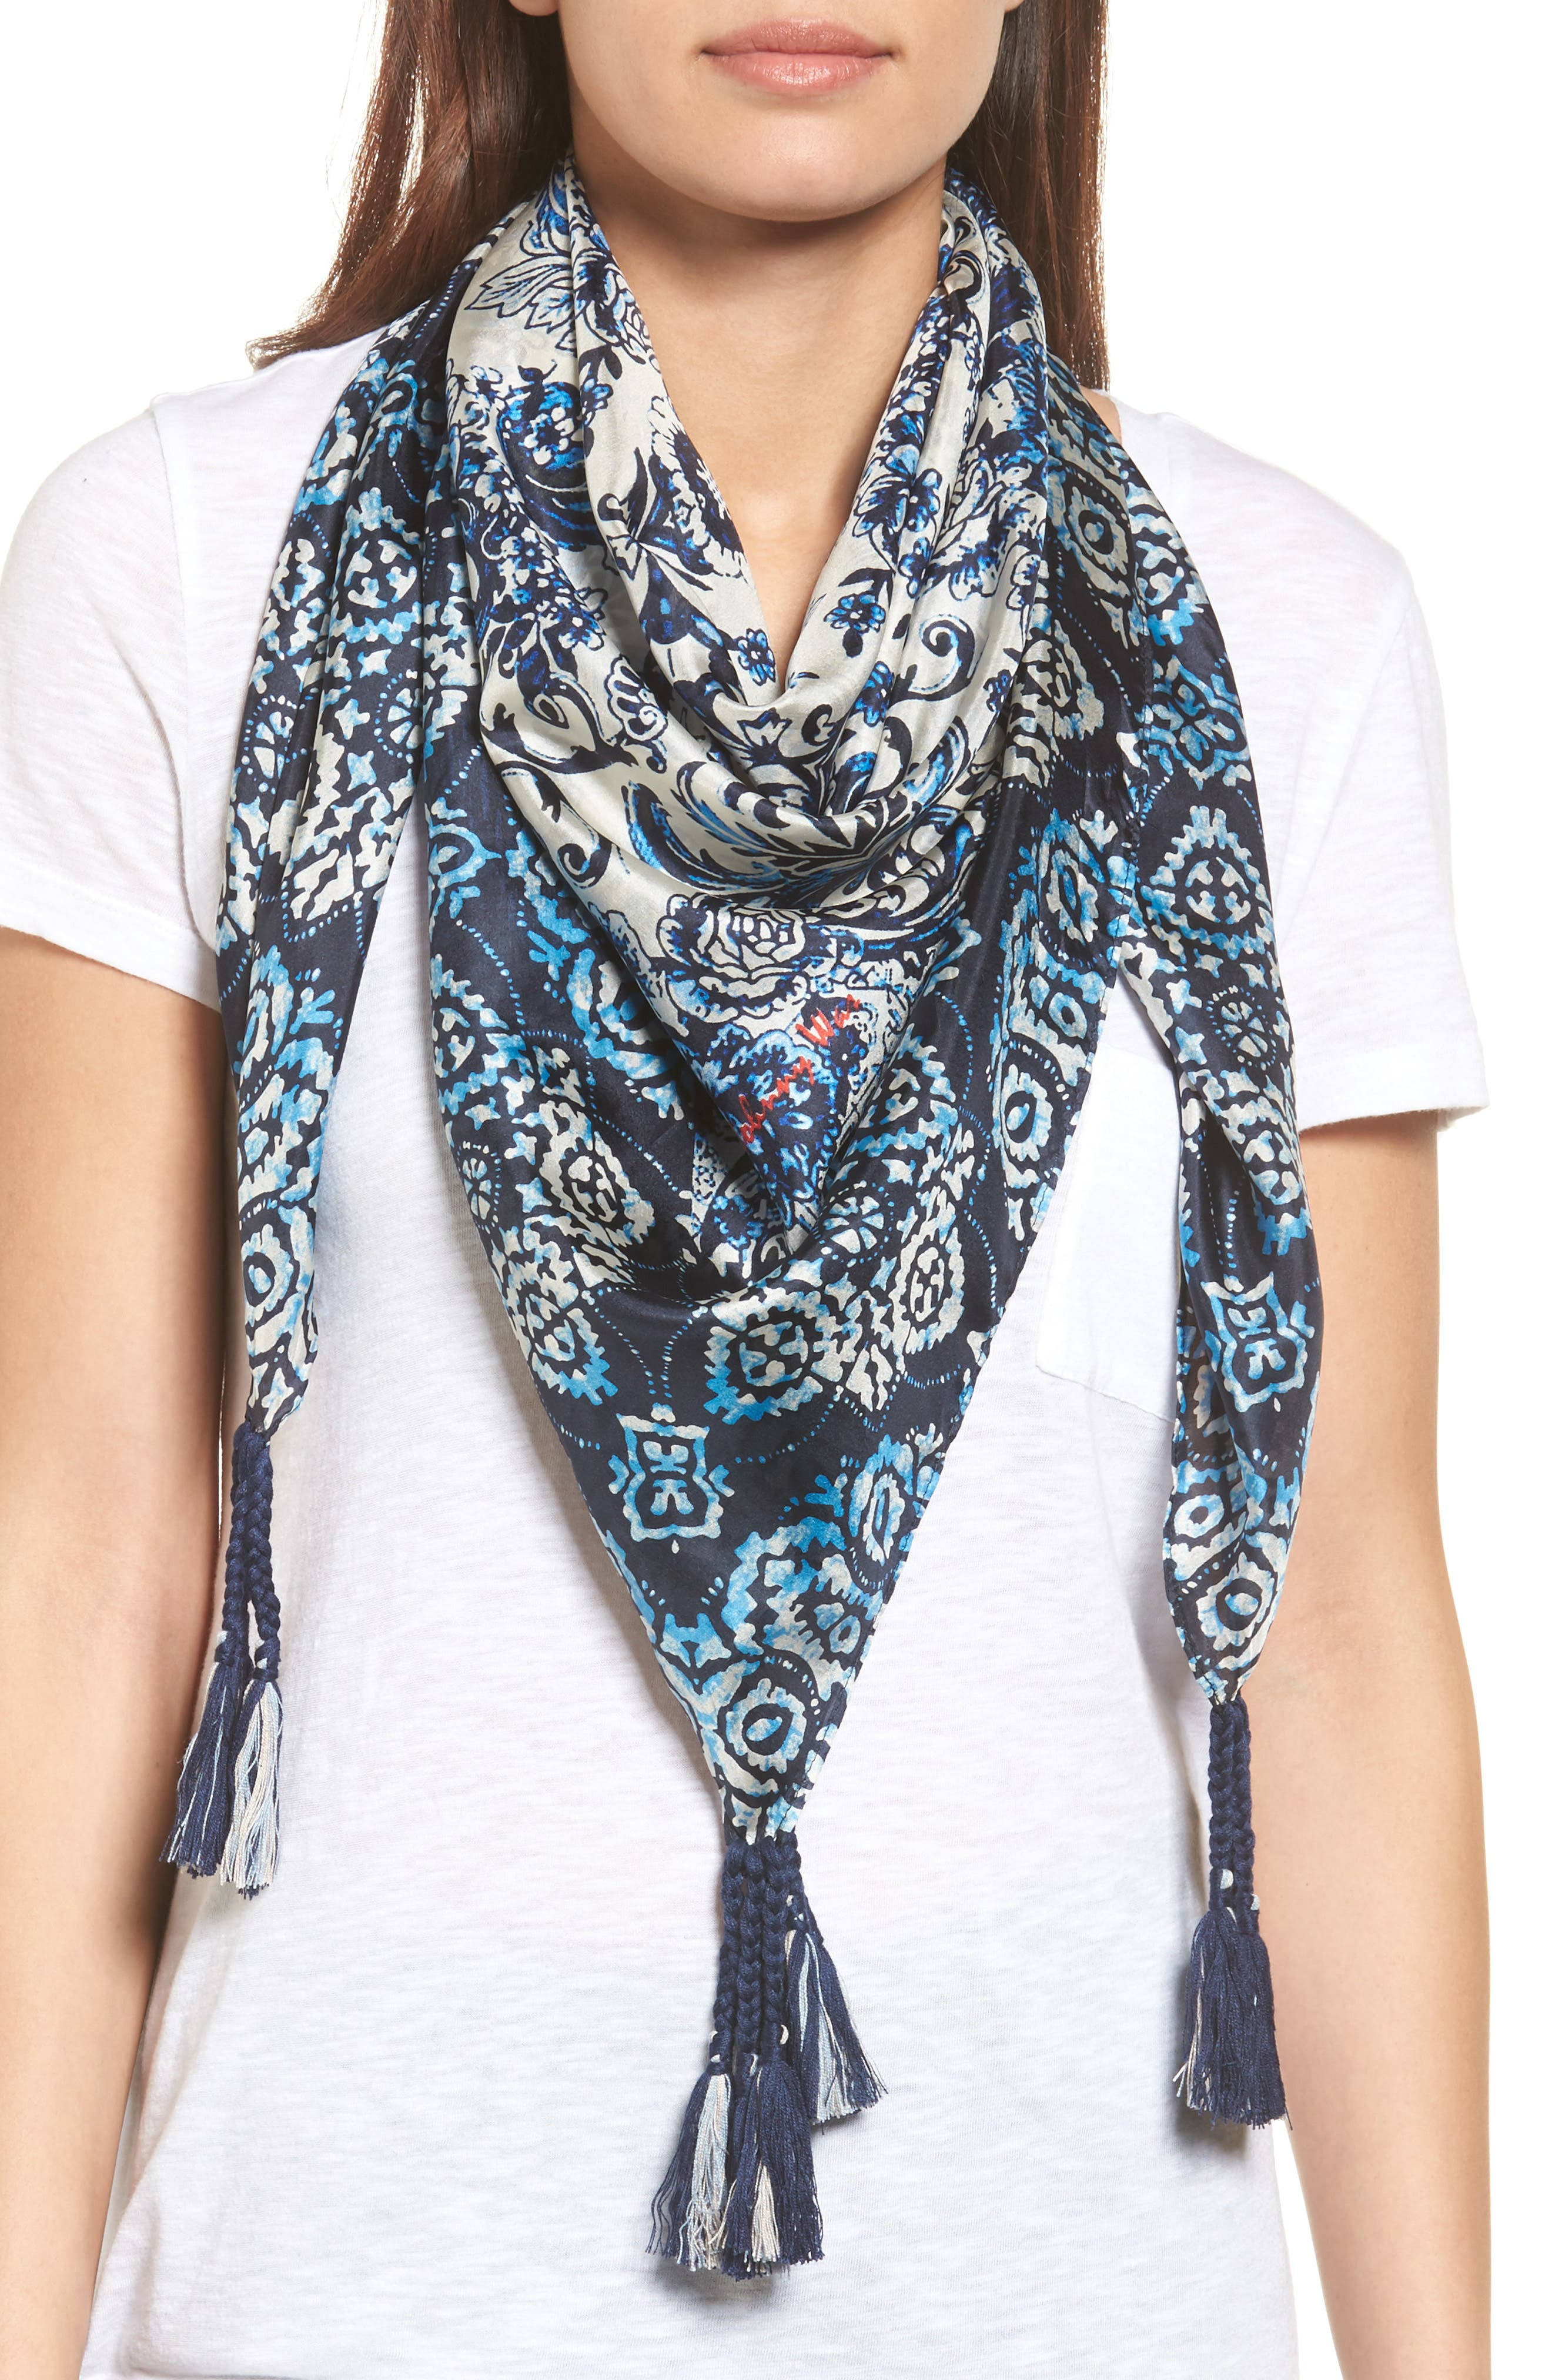 Flores Silk Square Scarf,                         Main,                         color, Mixed Print